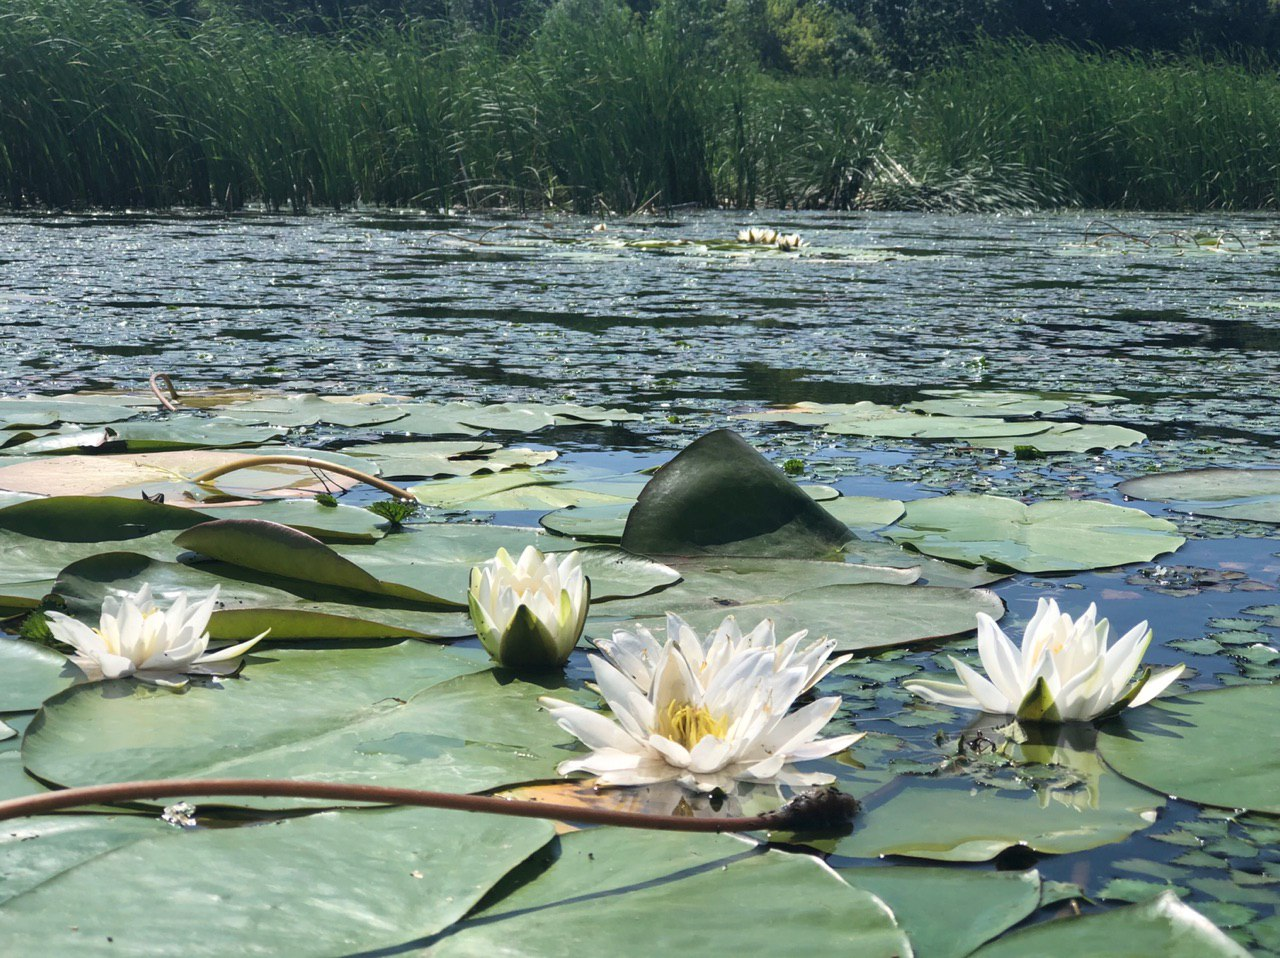 White lilies, river lilies, often confused with lotus